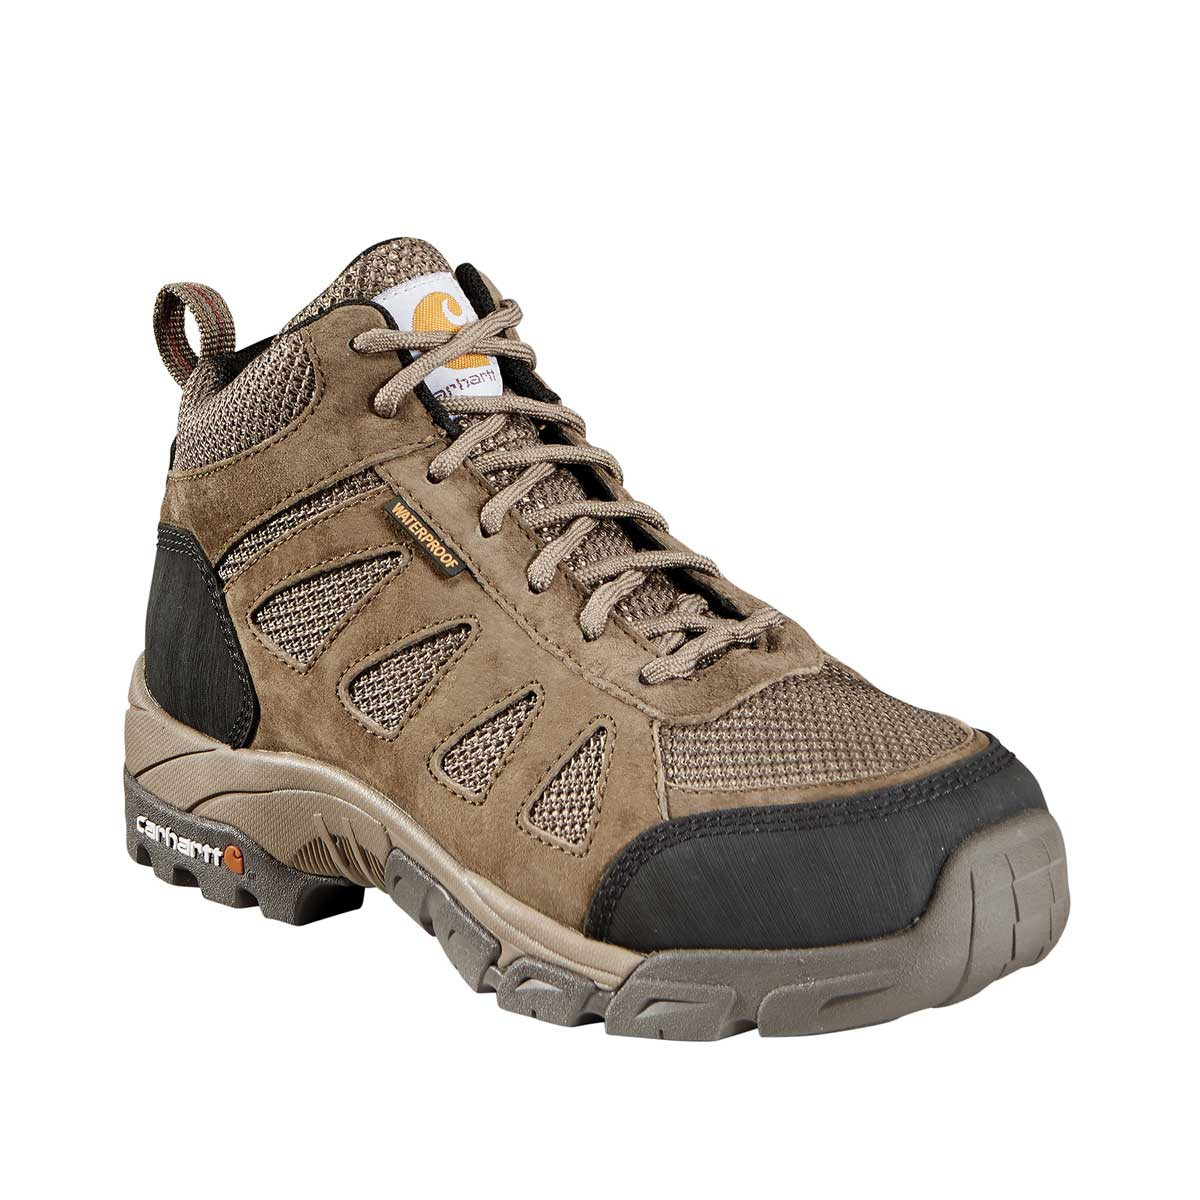 "Carhartt Women's Lightweight 6""H Plain Toe Waterproof Hiker Boots"